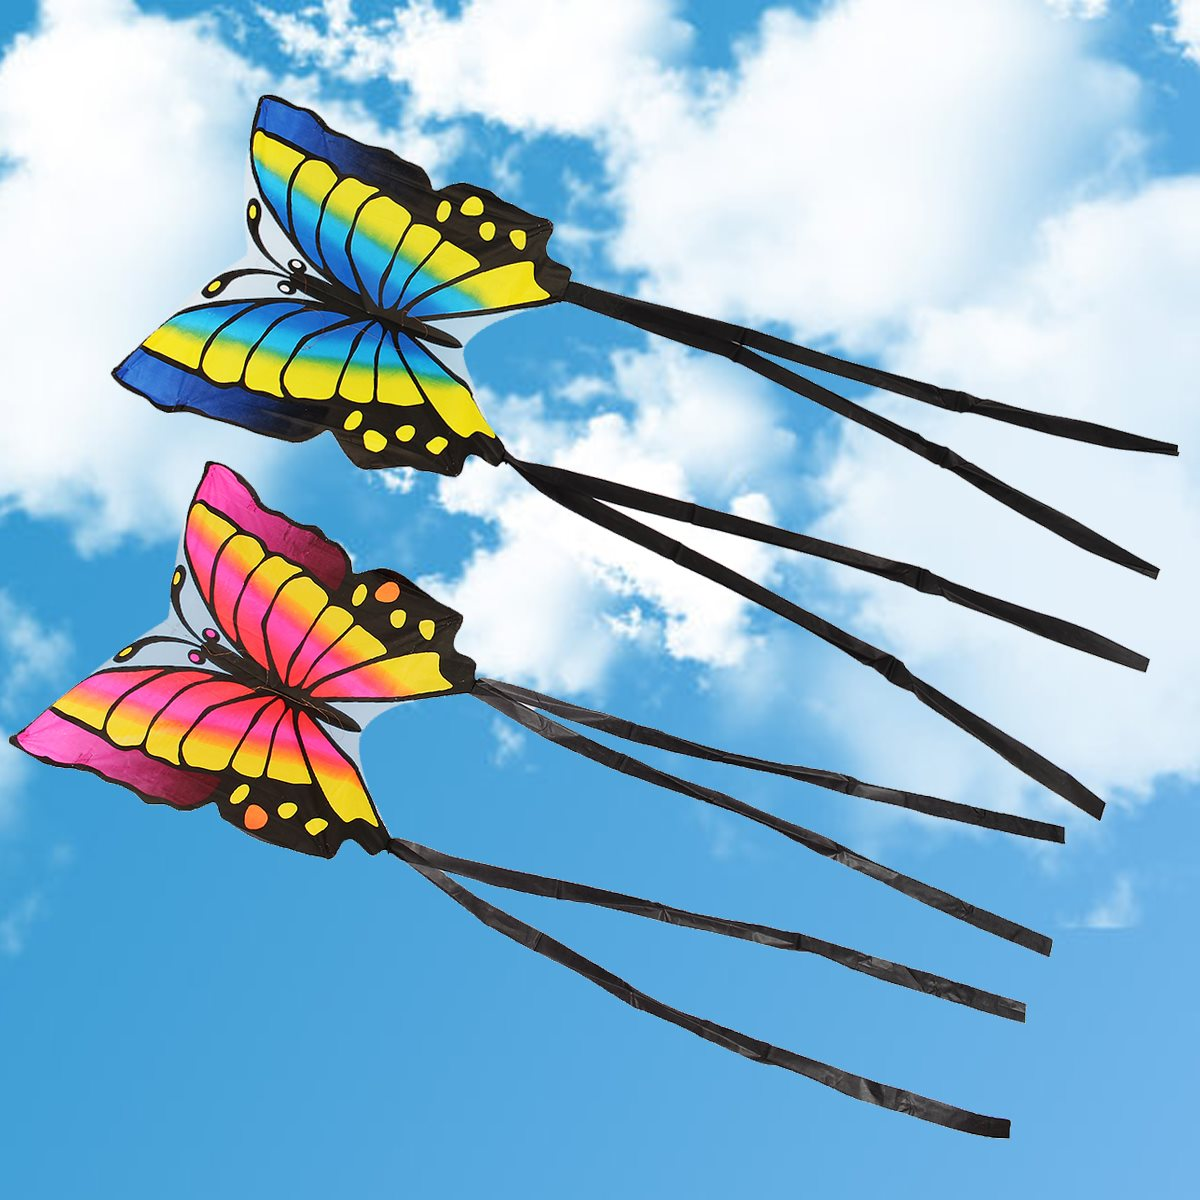 Children's Butterfly Kite Easy to Fly Single Line Kite Tail 1.5M Outdoor Funny Sports Toy Gift Funny Sport Outdoor Playing Toys 16 colors x vented outdoor playing quad line stunt kite 4 lines beach flying sport kite with 25m line 2pcs handles